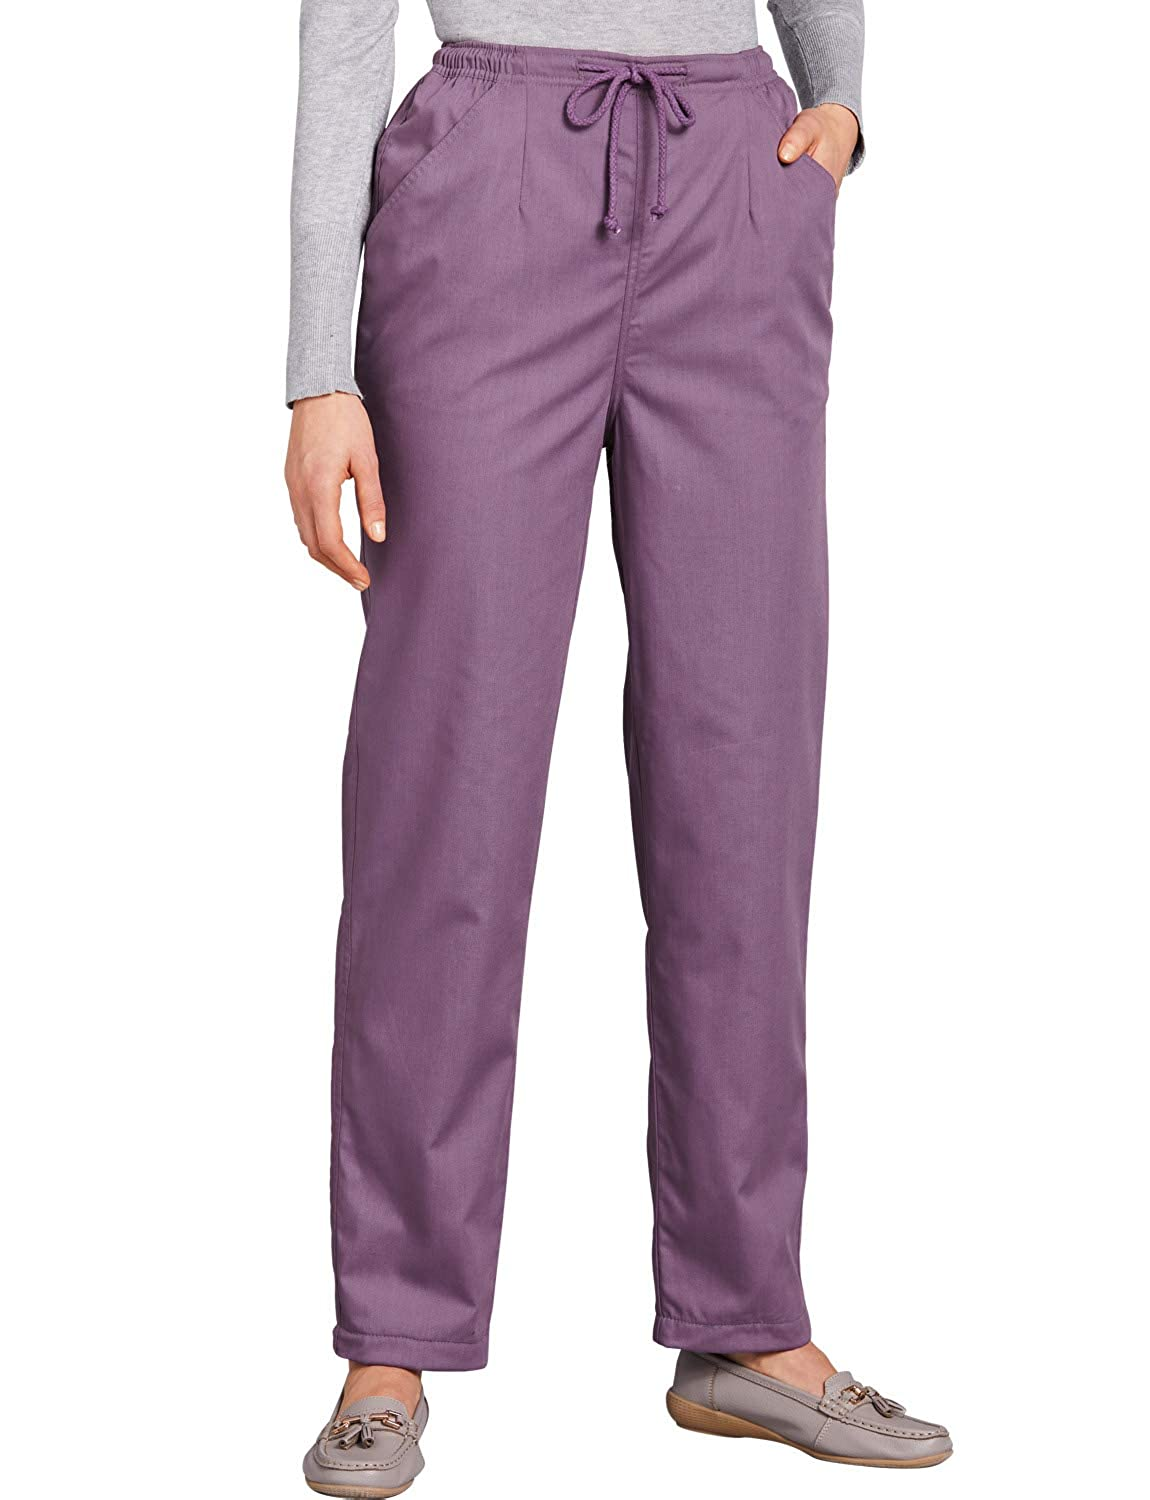 Chums Ladies Womens Thermal Lined Trousers